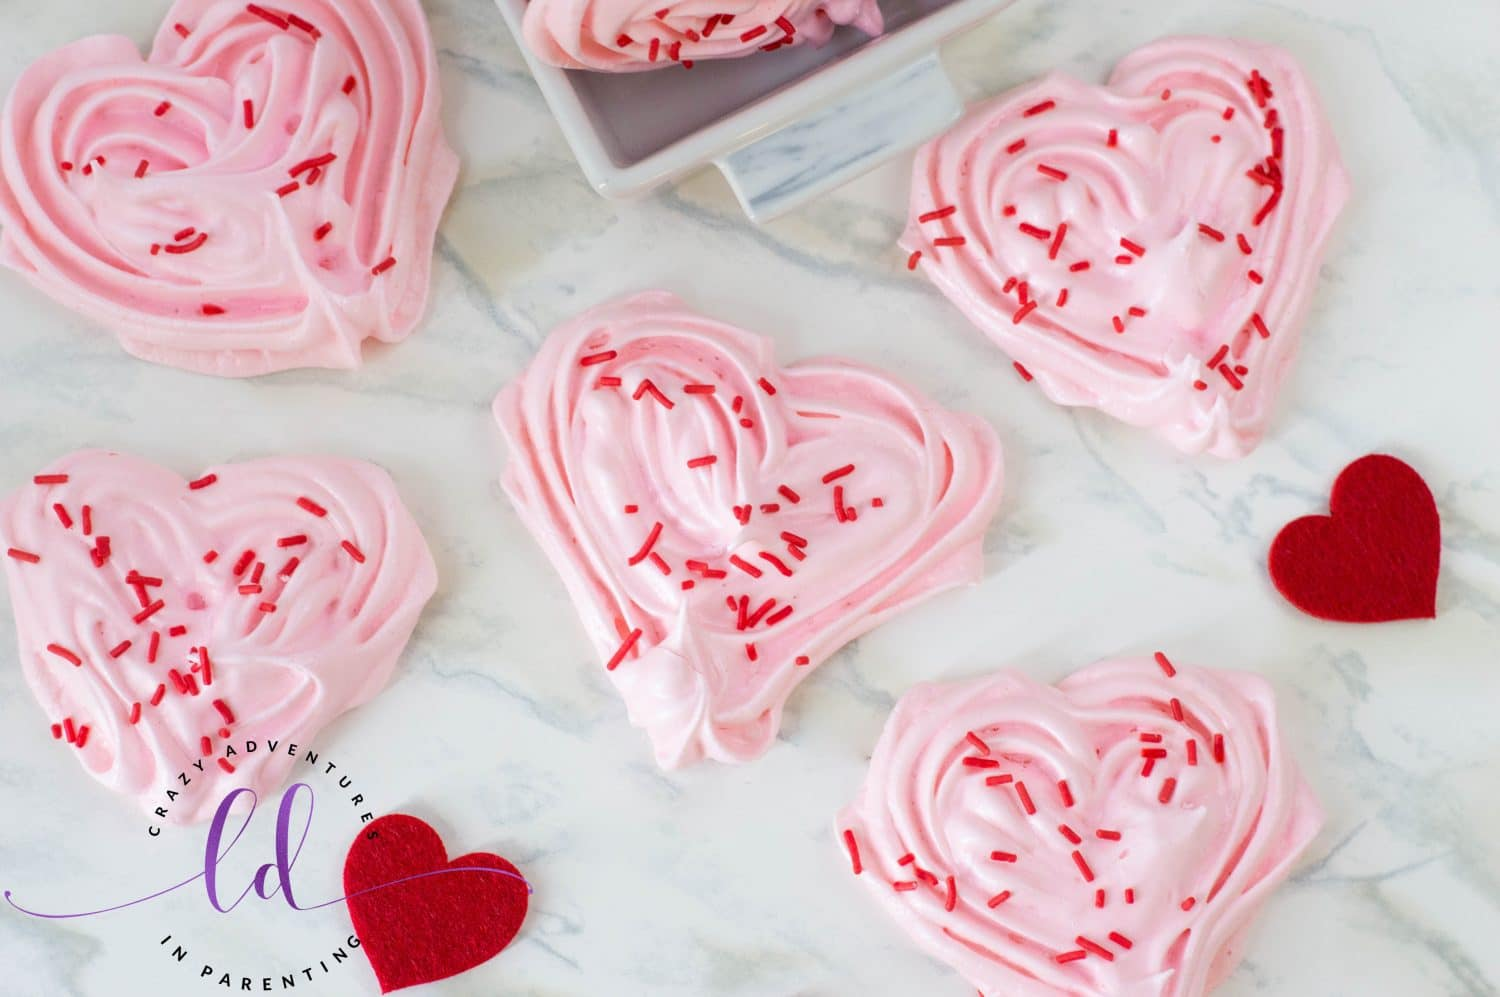 14 Valentine's Day Desserts to Make for the One You Love